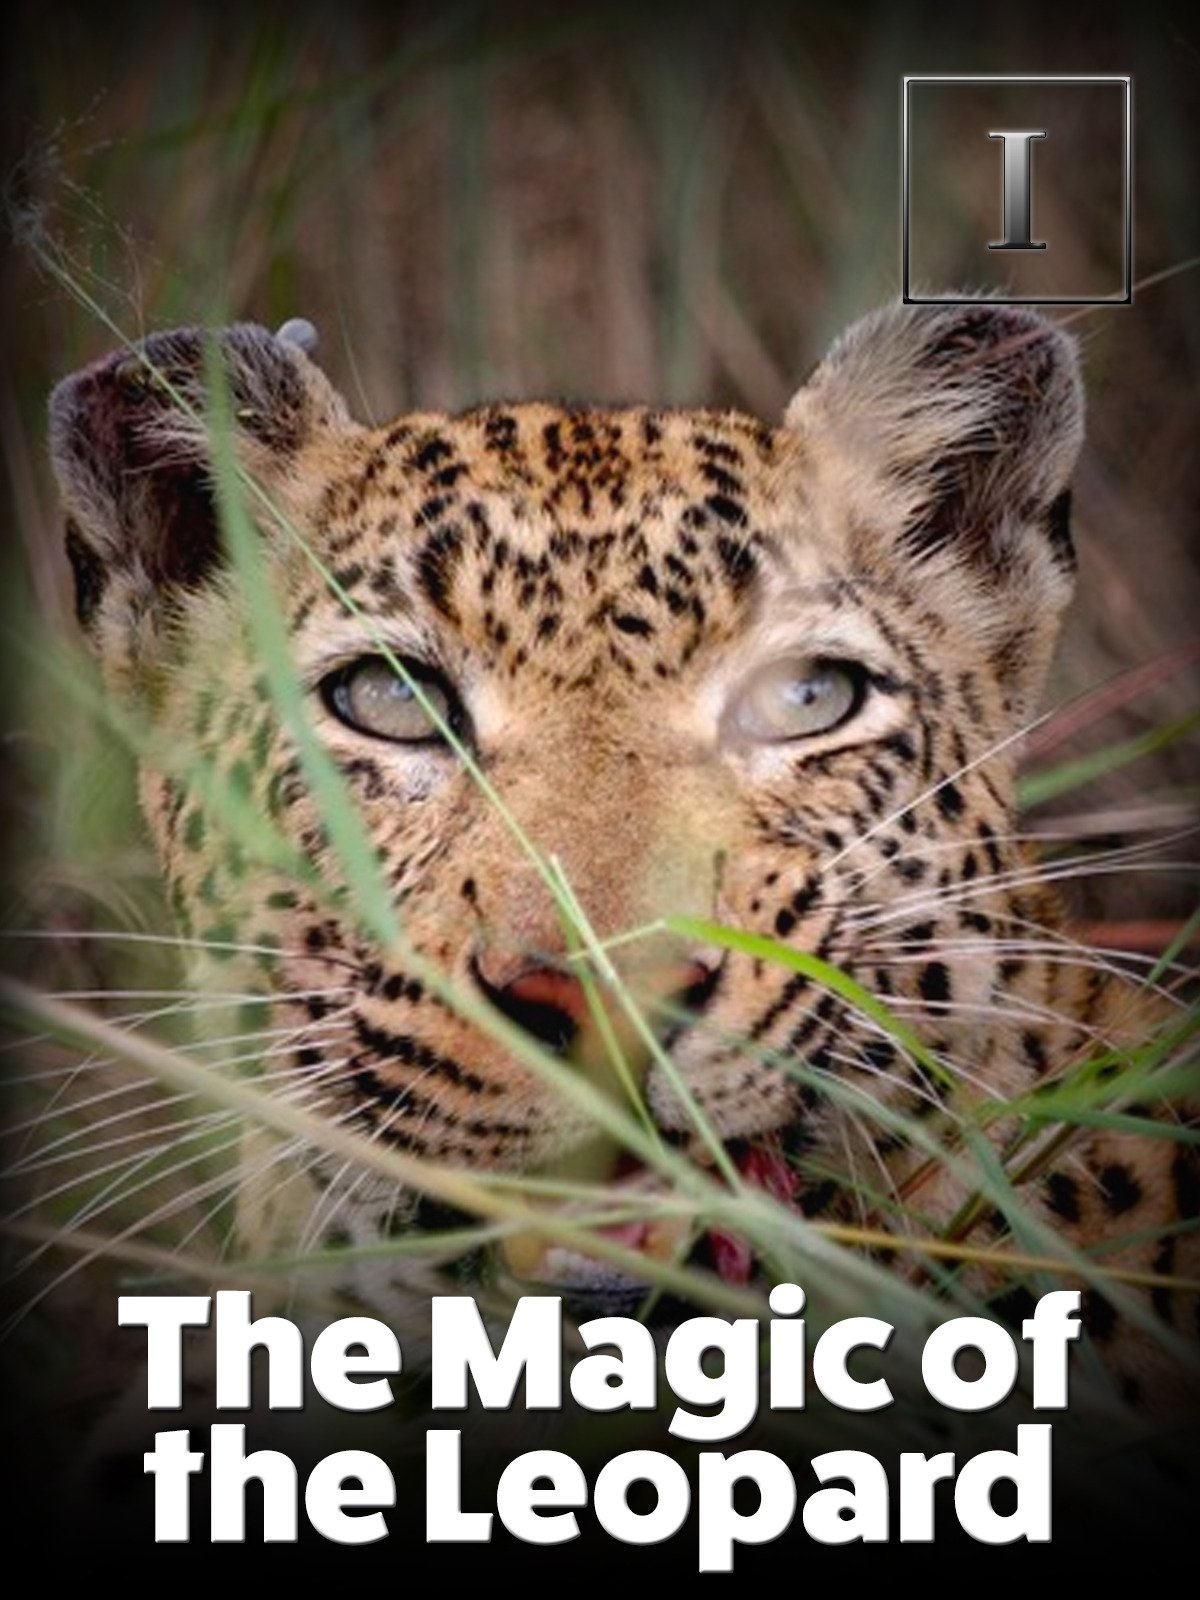 The Magic of the Leopard